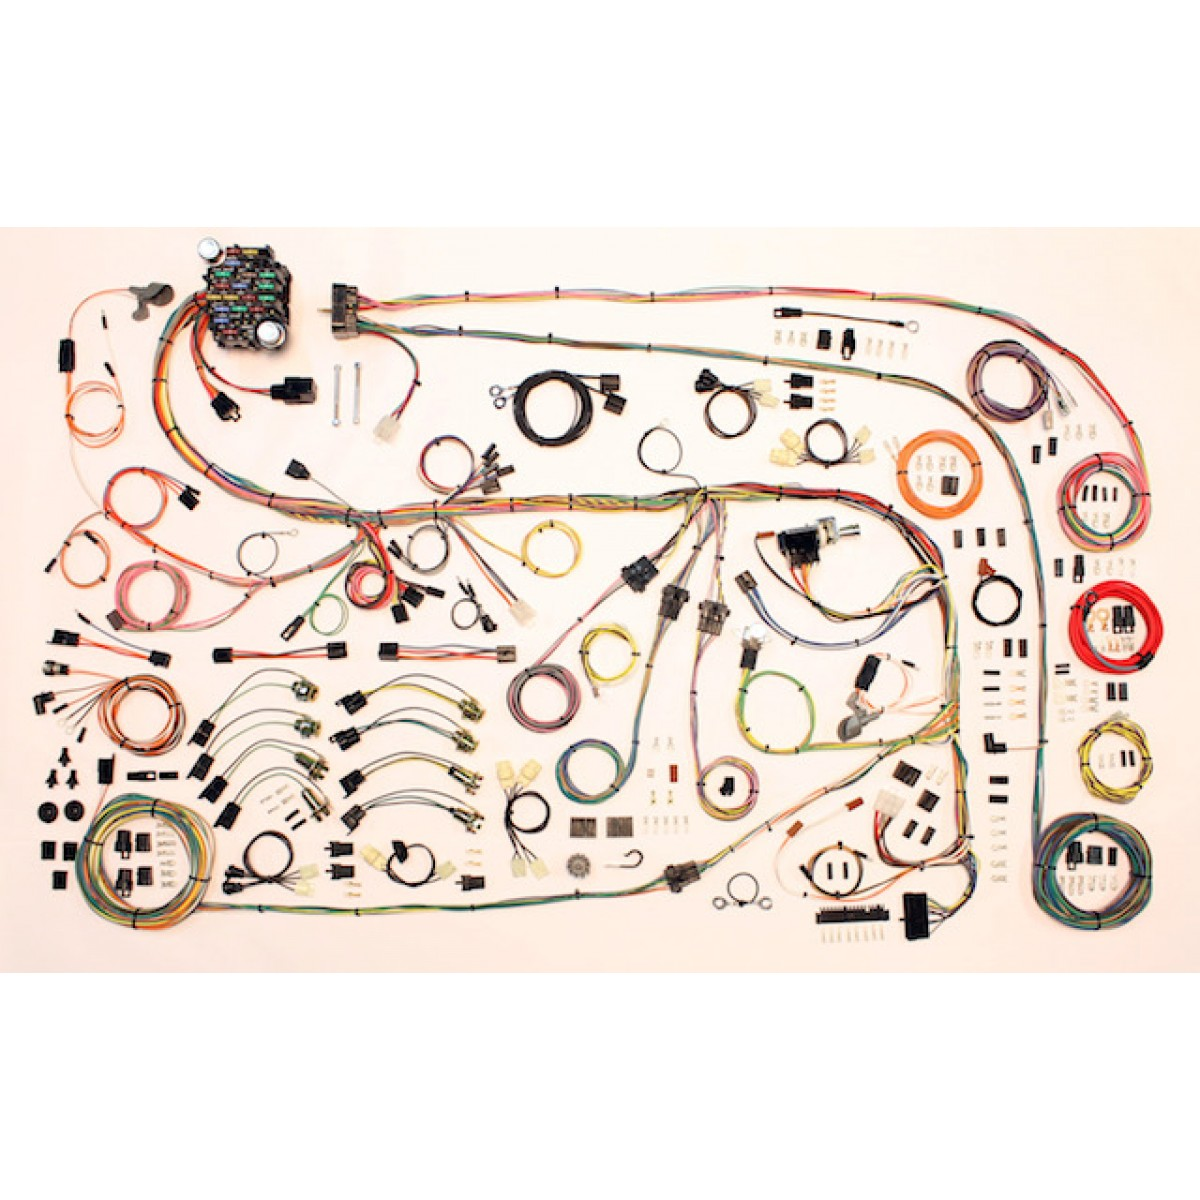 complete wiring harness kit 1967 75 dodge dart part 510603 dodge truck wiring diagram complete wiring harness kit 1967 75 dodge dart part 510603